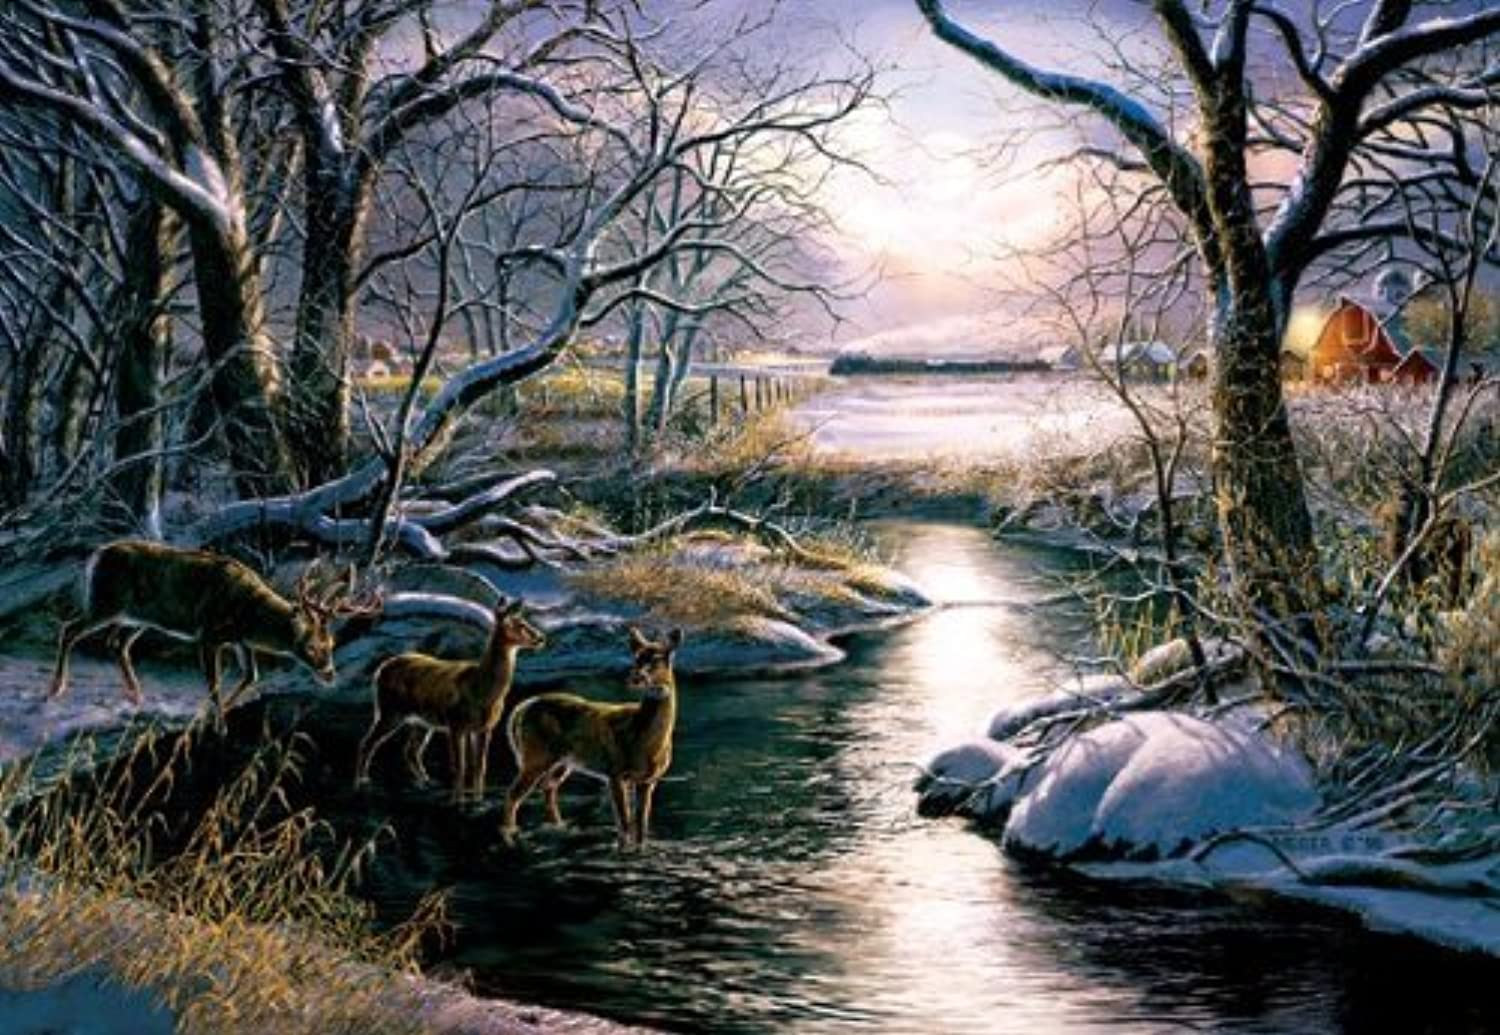 A Country Silent Night Jigsaw Puzzle by SunsOut Puzzles